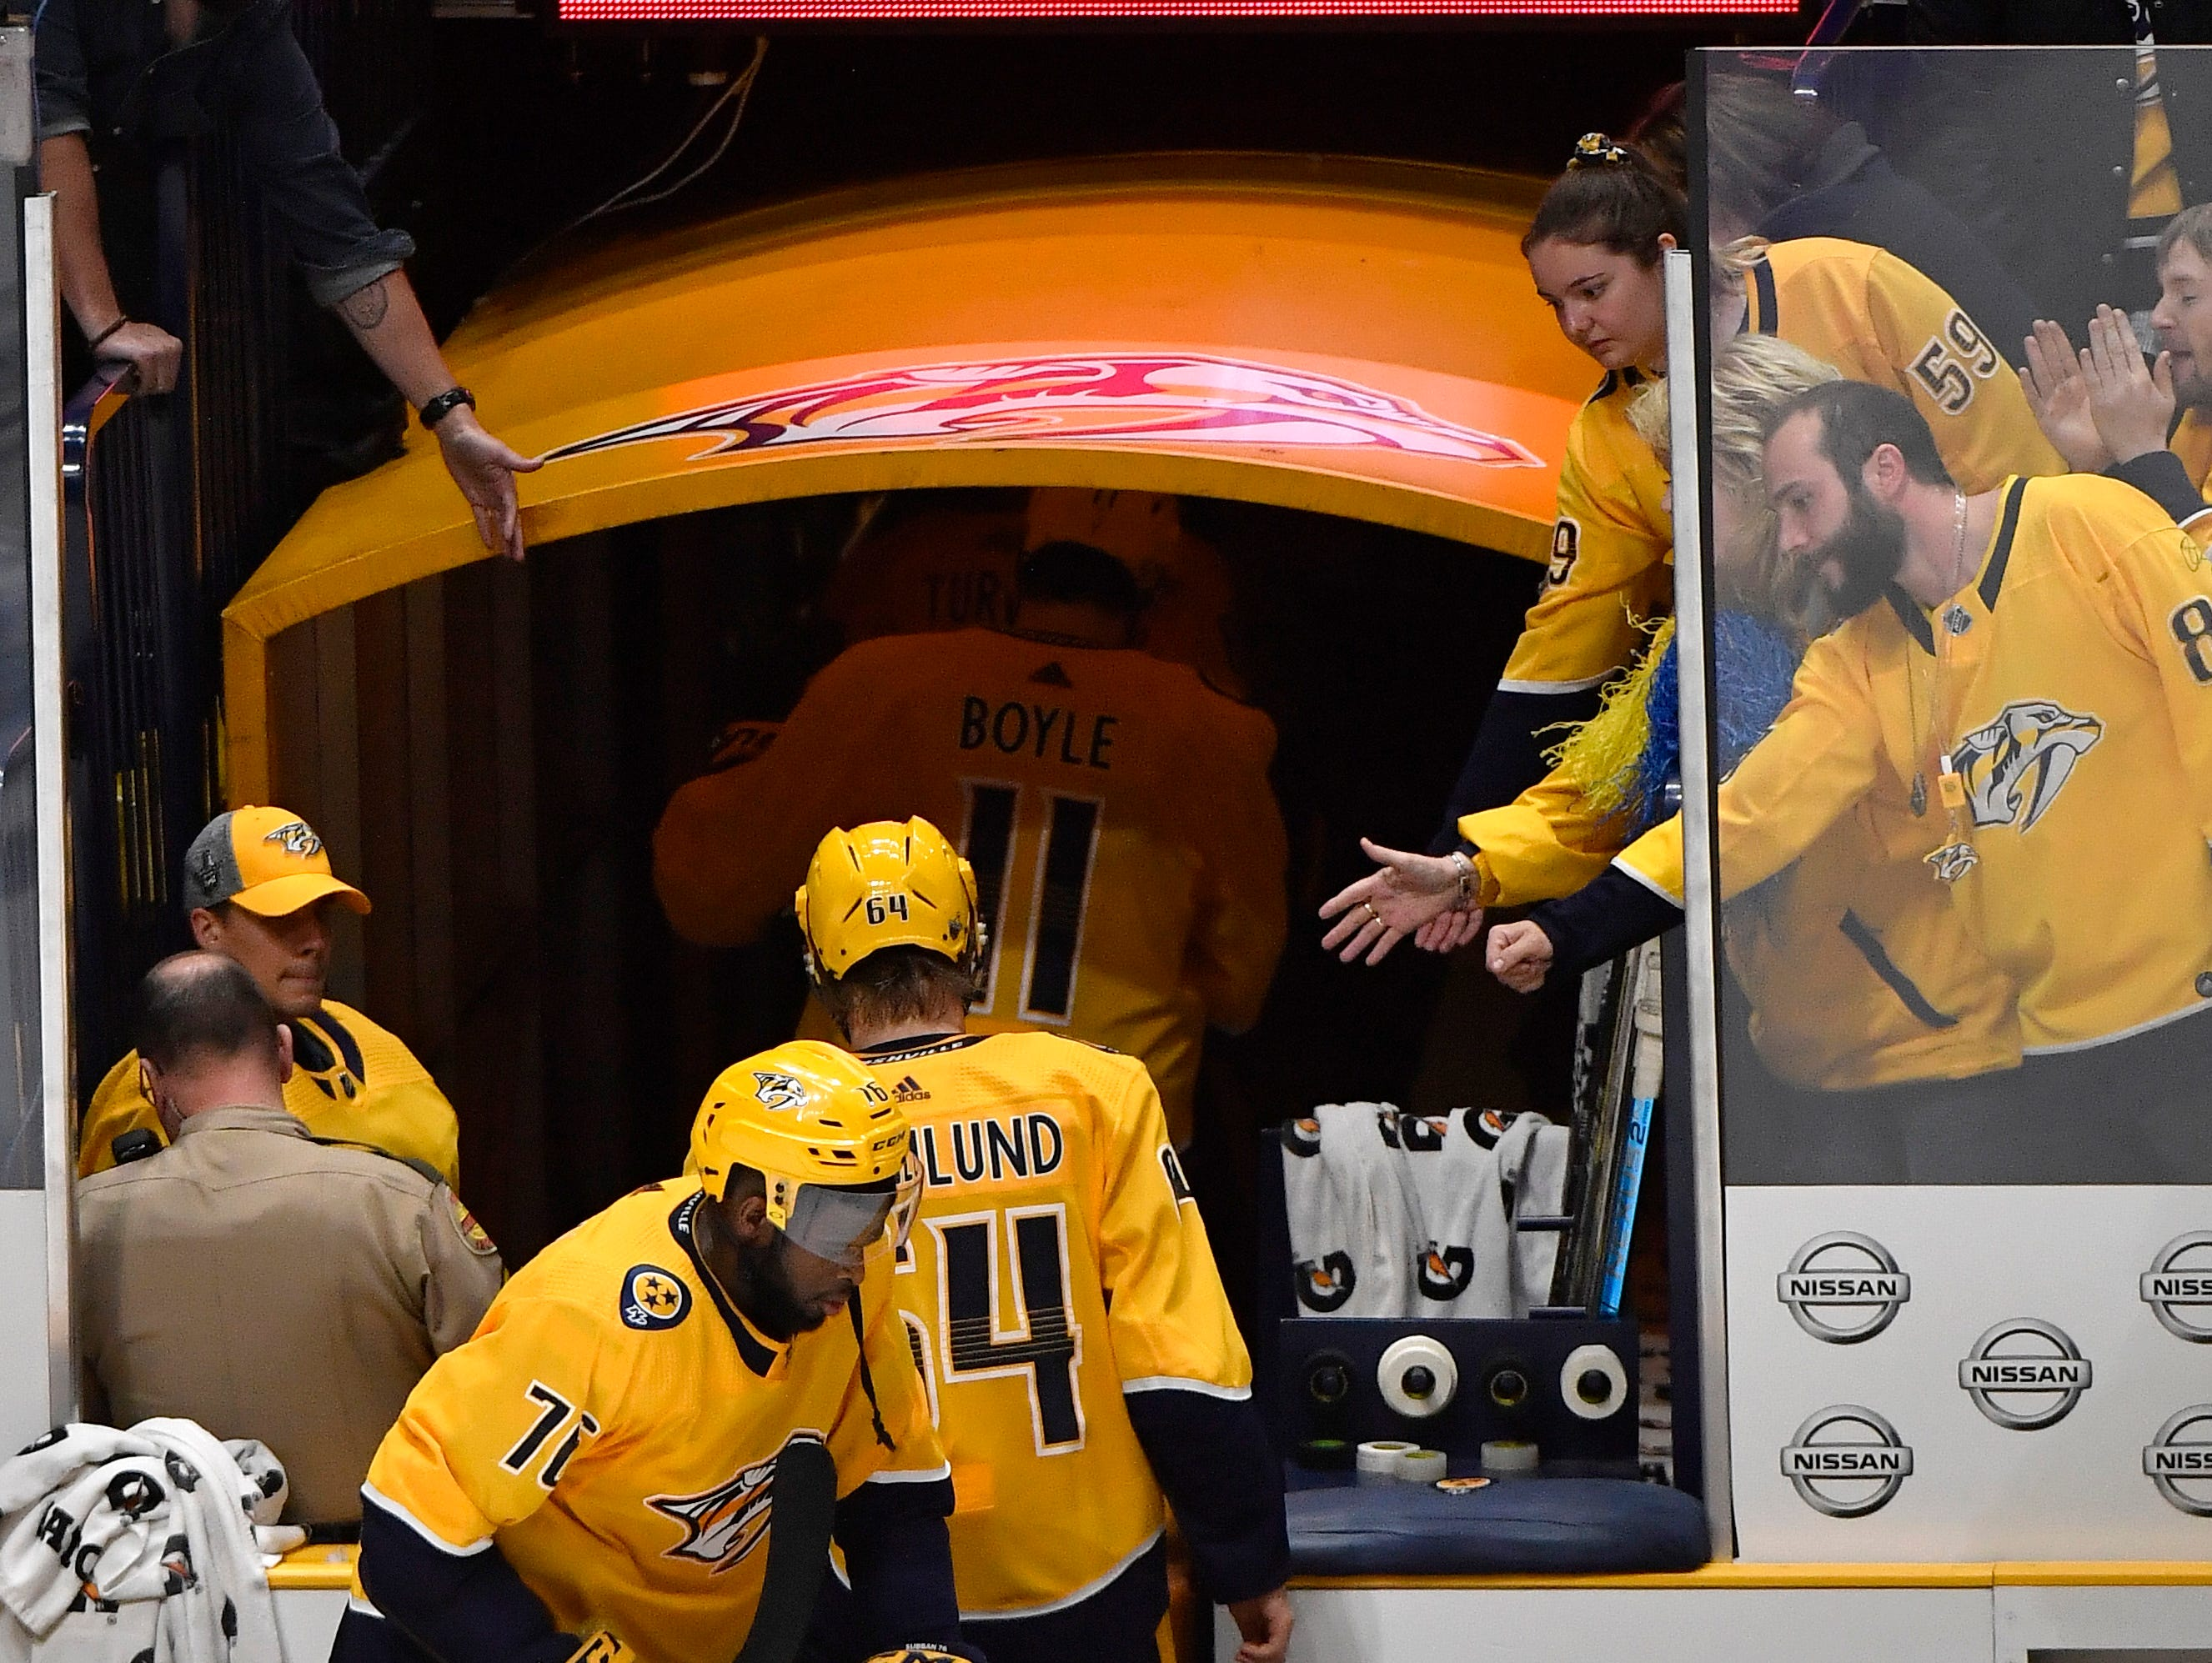 Predators fans reach for the players after they leave the ice after the team's 3-2 loss to the Dallas Stars in the divisional semifinal game at Bridgestone Arena in Nashville, Tenn., Wednesday, April 10, 2019.